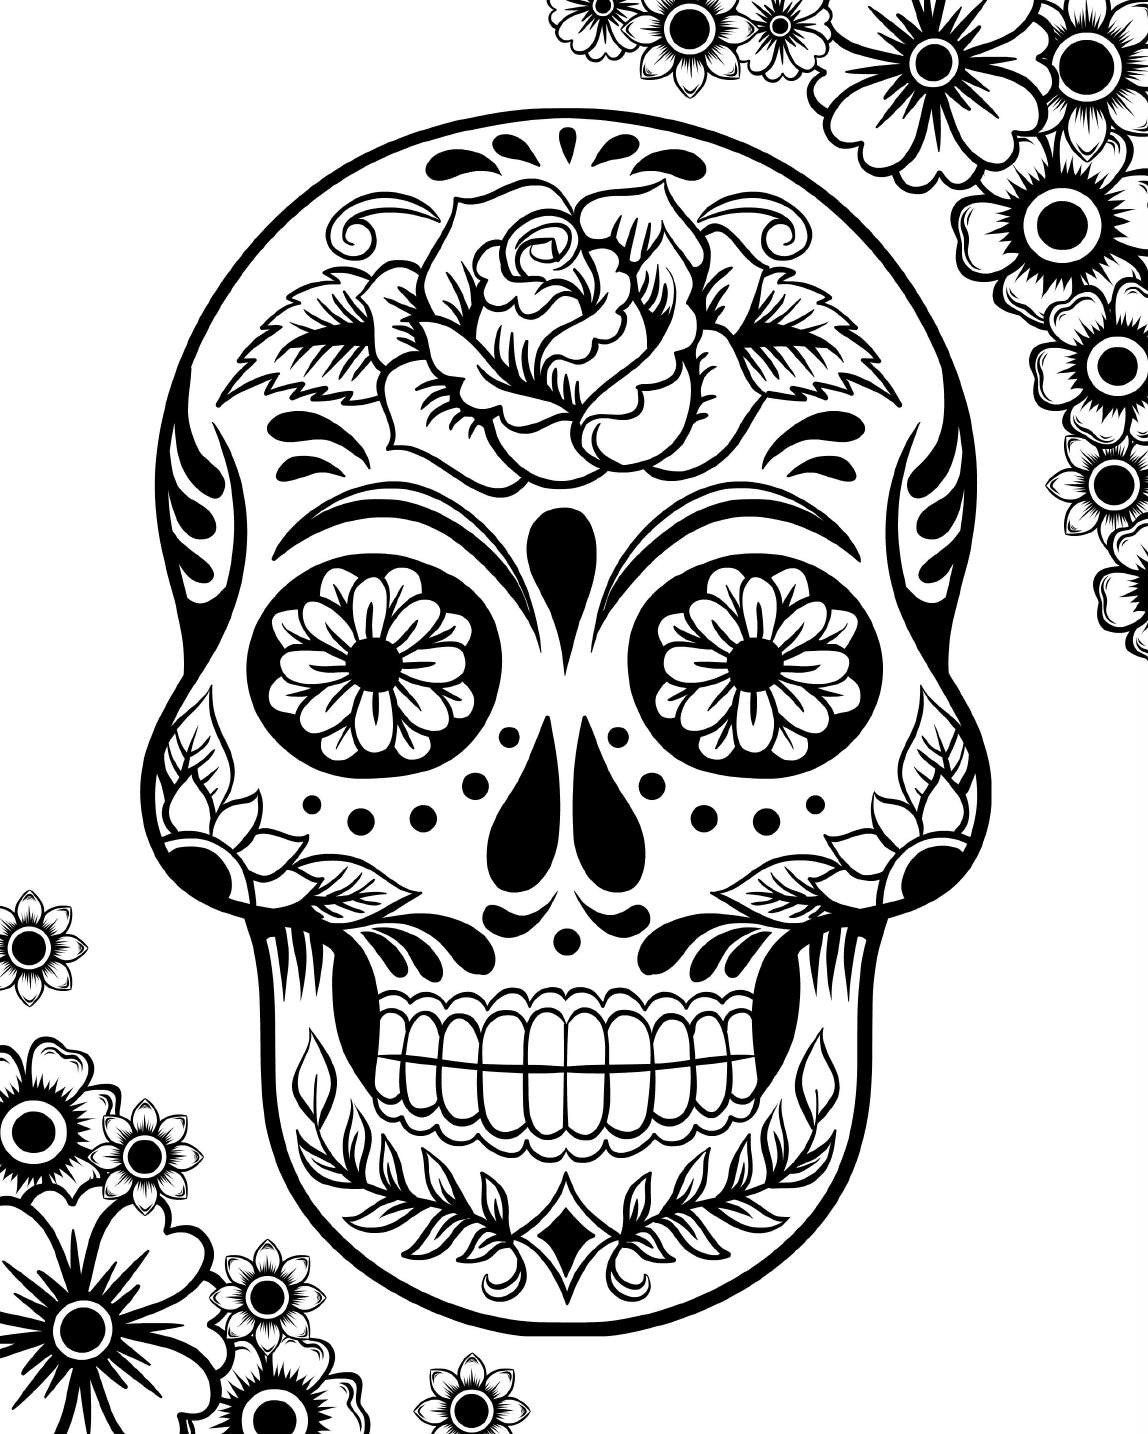 detailed skull coloring pages day of the dead dia de los muertos sugar skull coloring skull pages coloring detailed